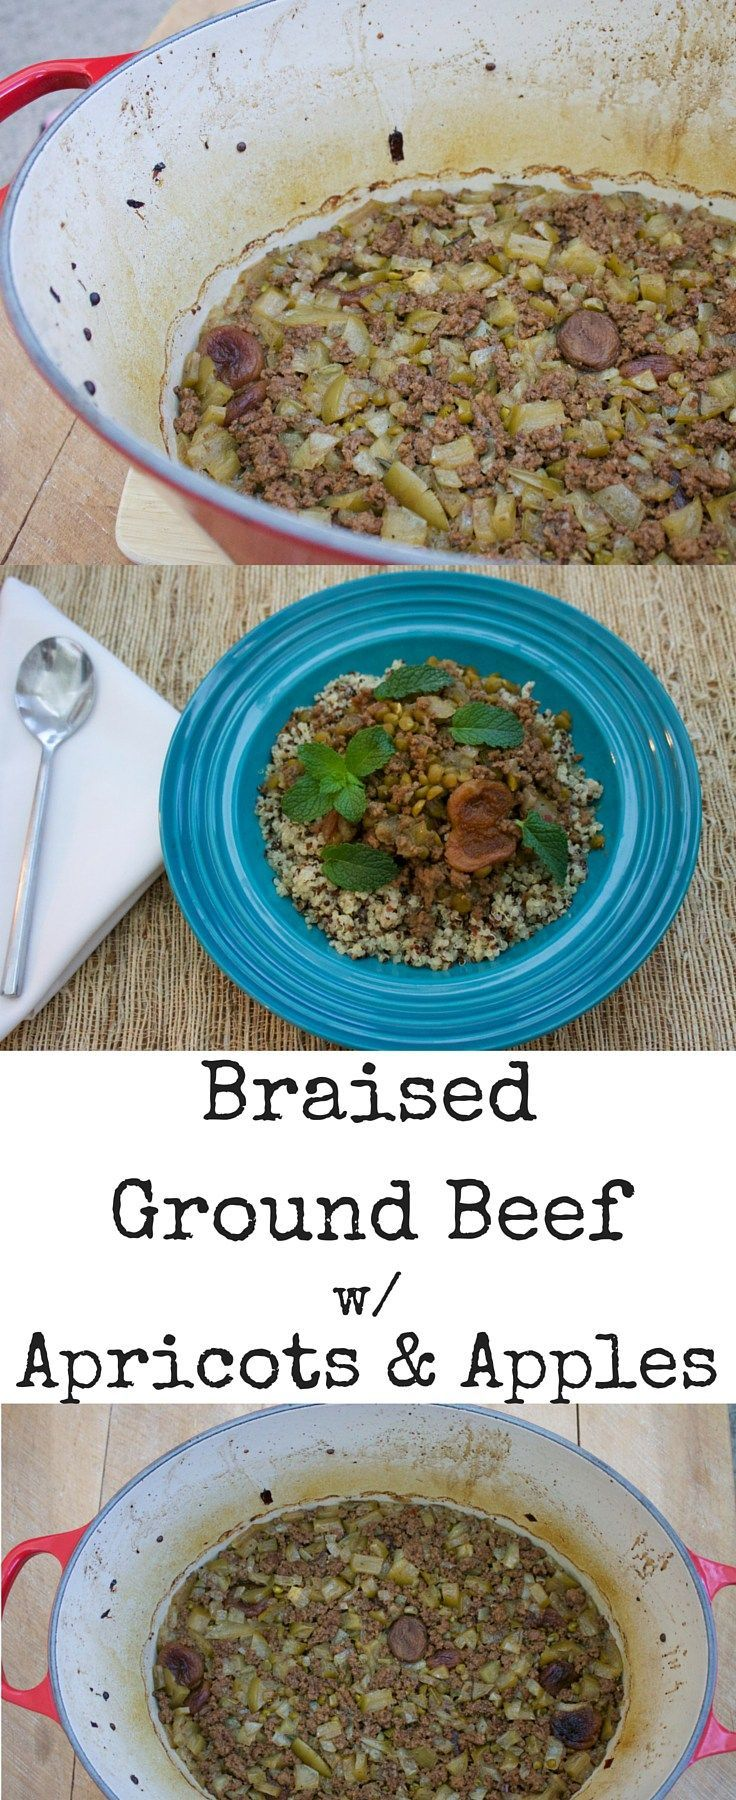 Super Easy Ground Beef Recipe In The Dutch Oven Sweet And Savory Thanks To The Spices And Apricots It S So Simp Braised Ground Beef Recipes Easy Beef Recipes